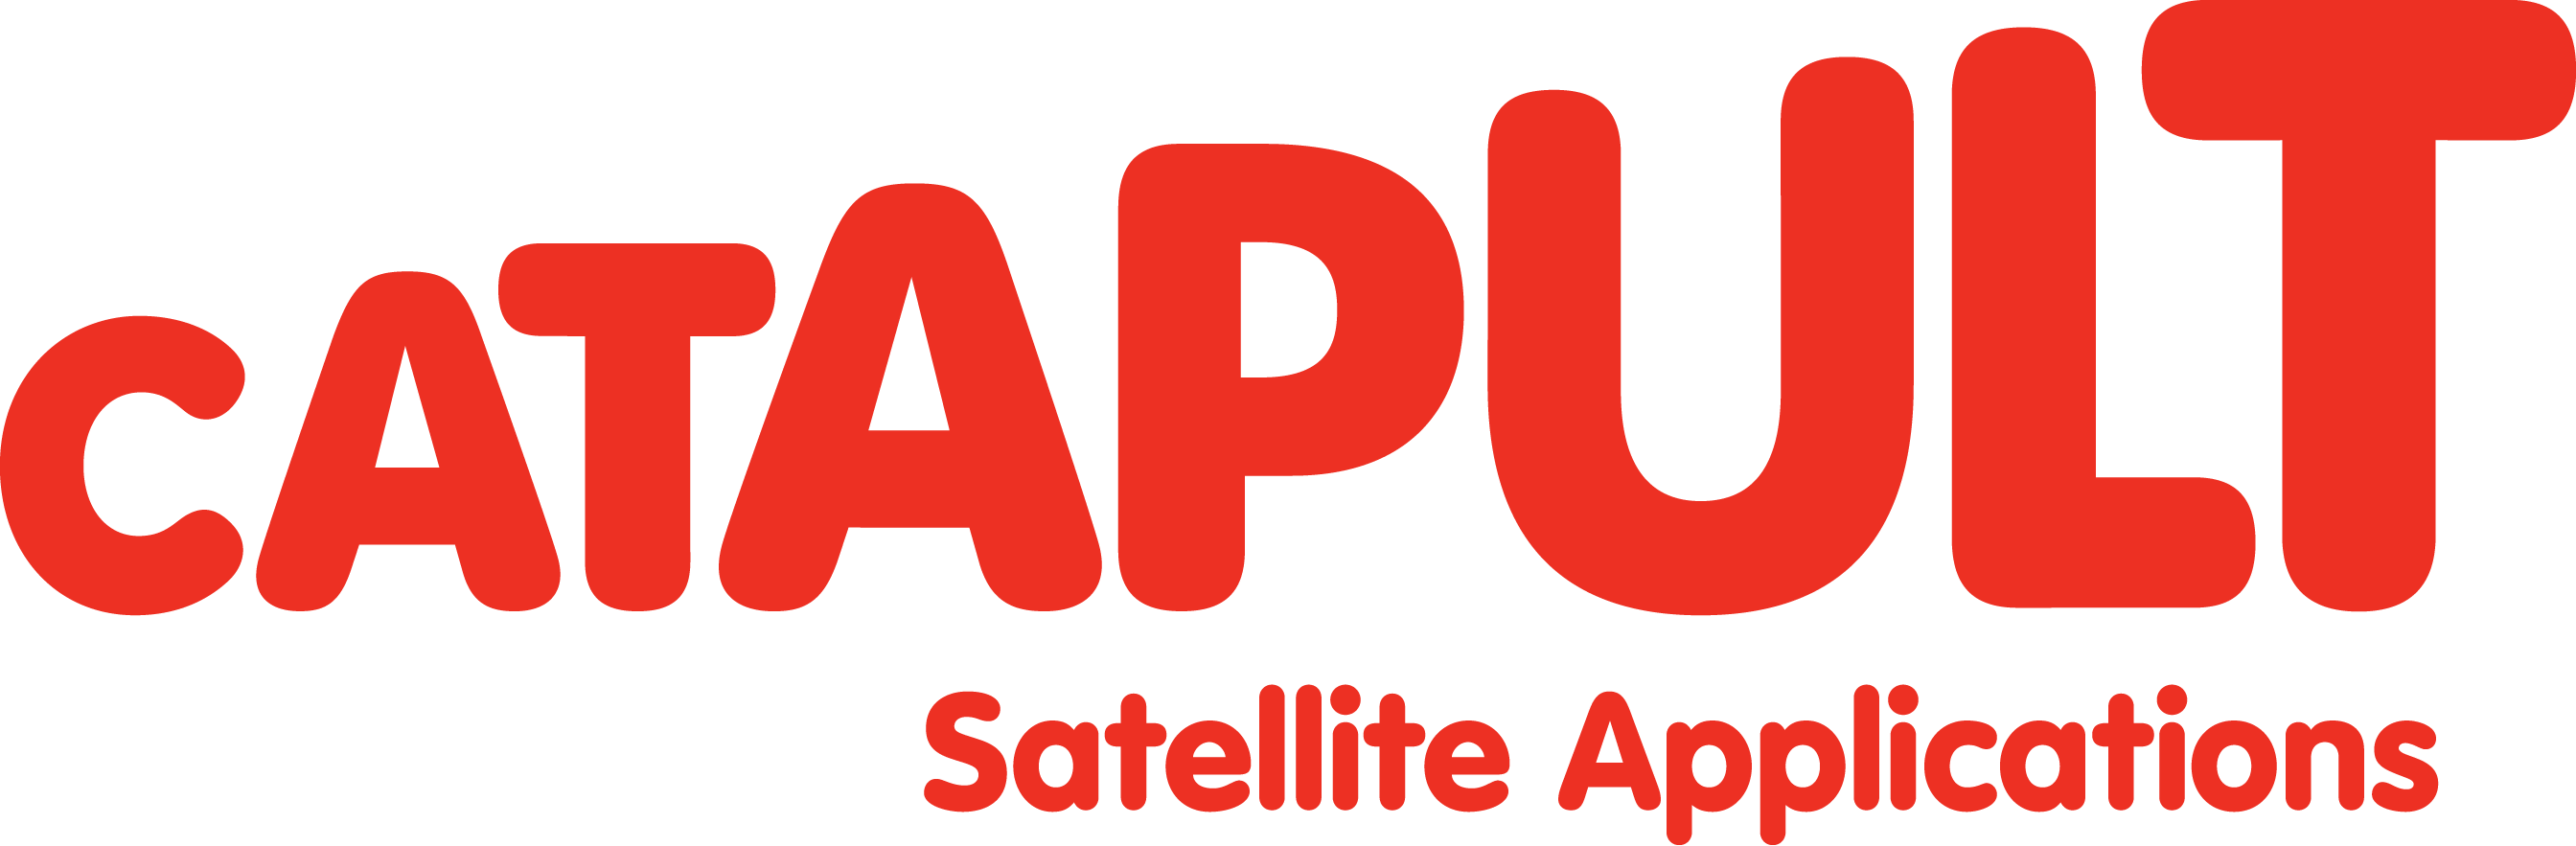 Catapult Satellite Applications logo